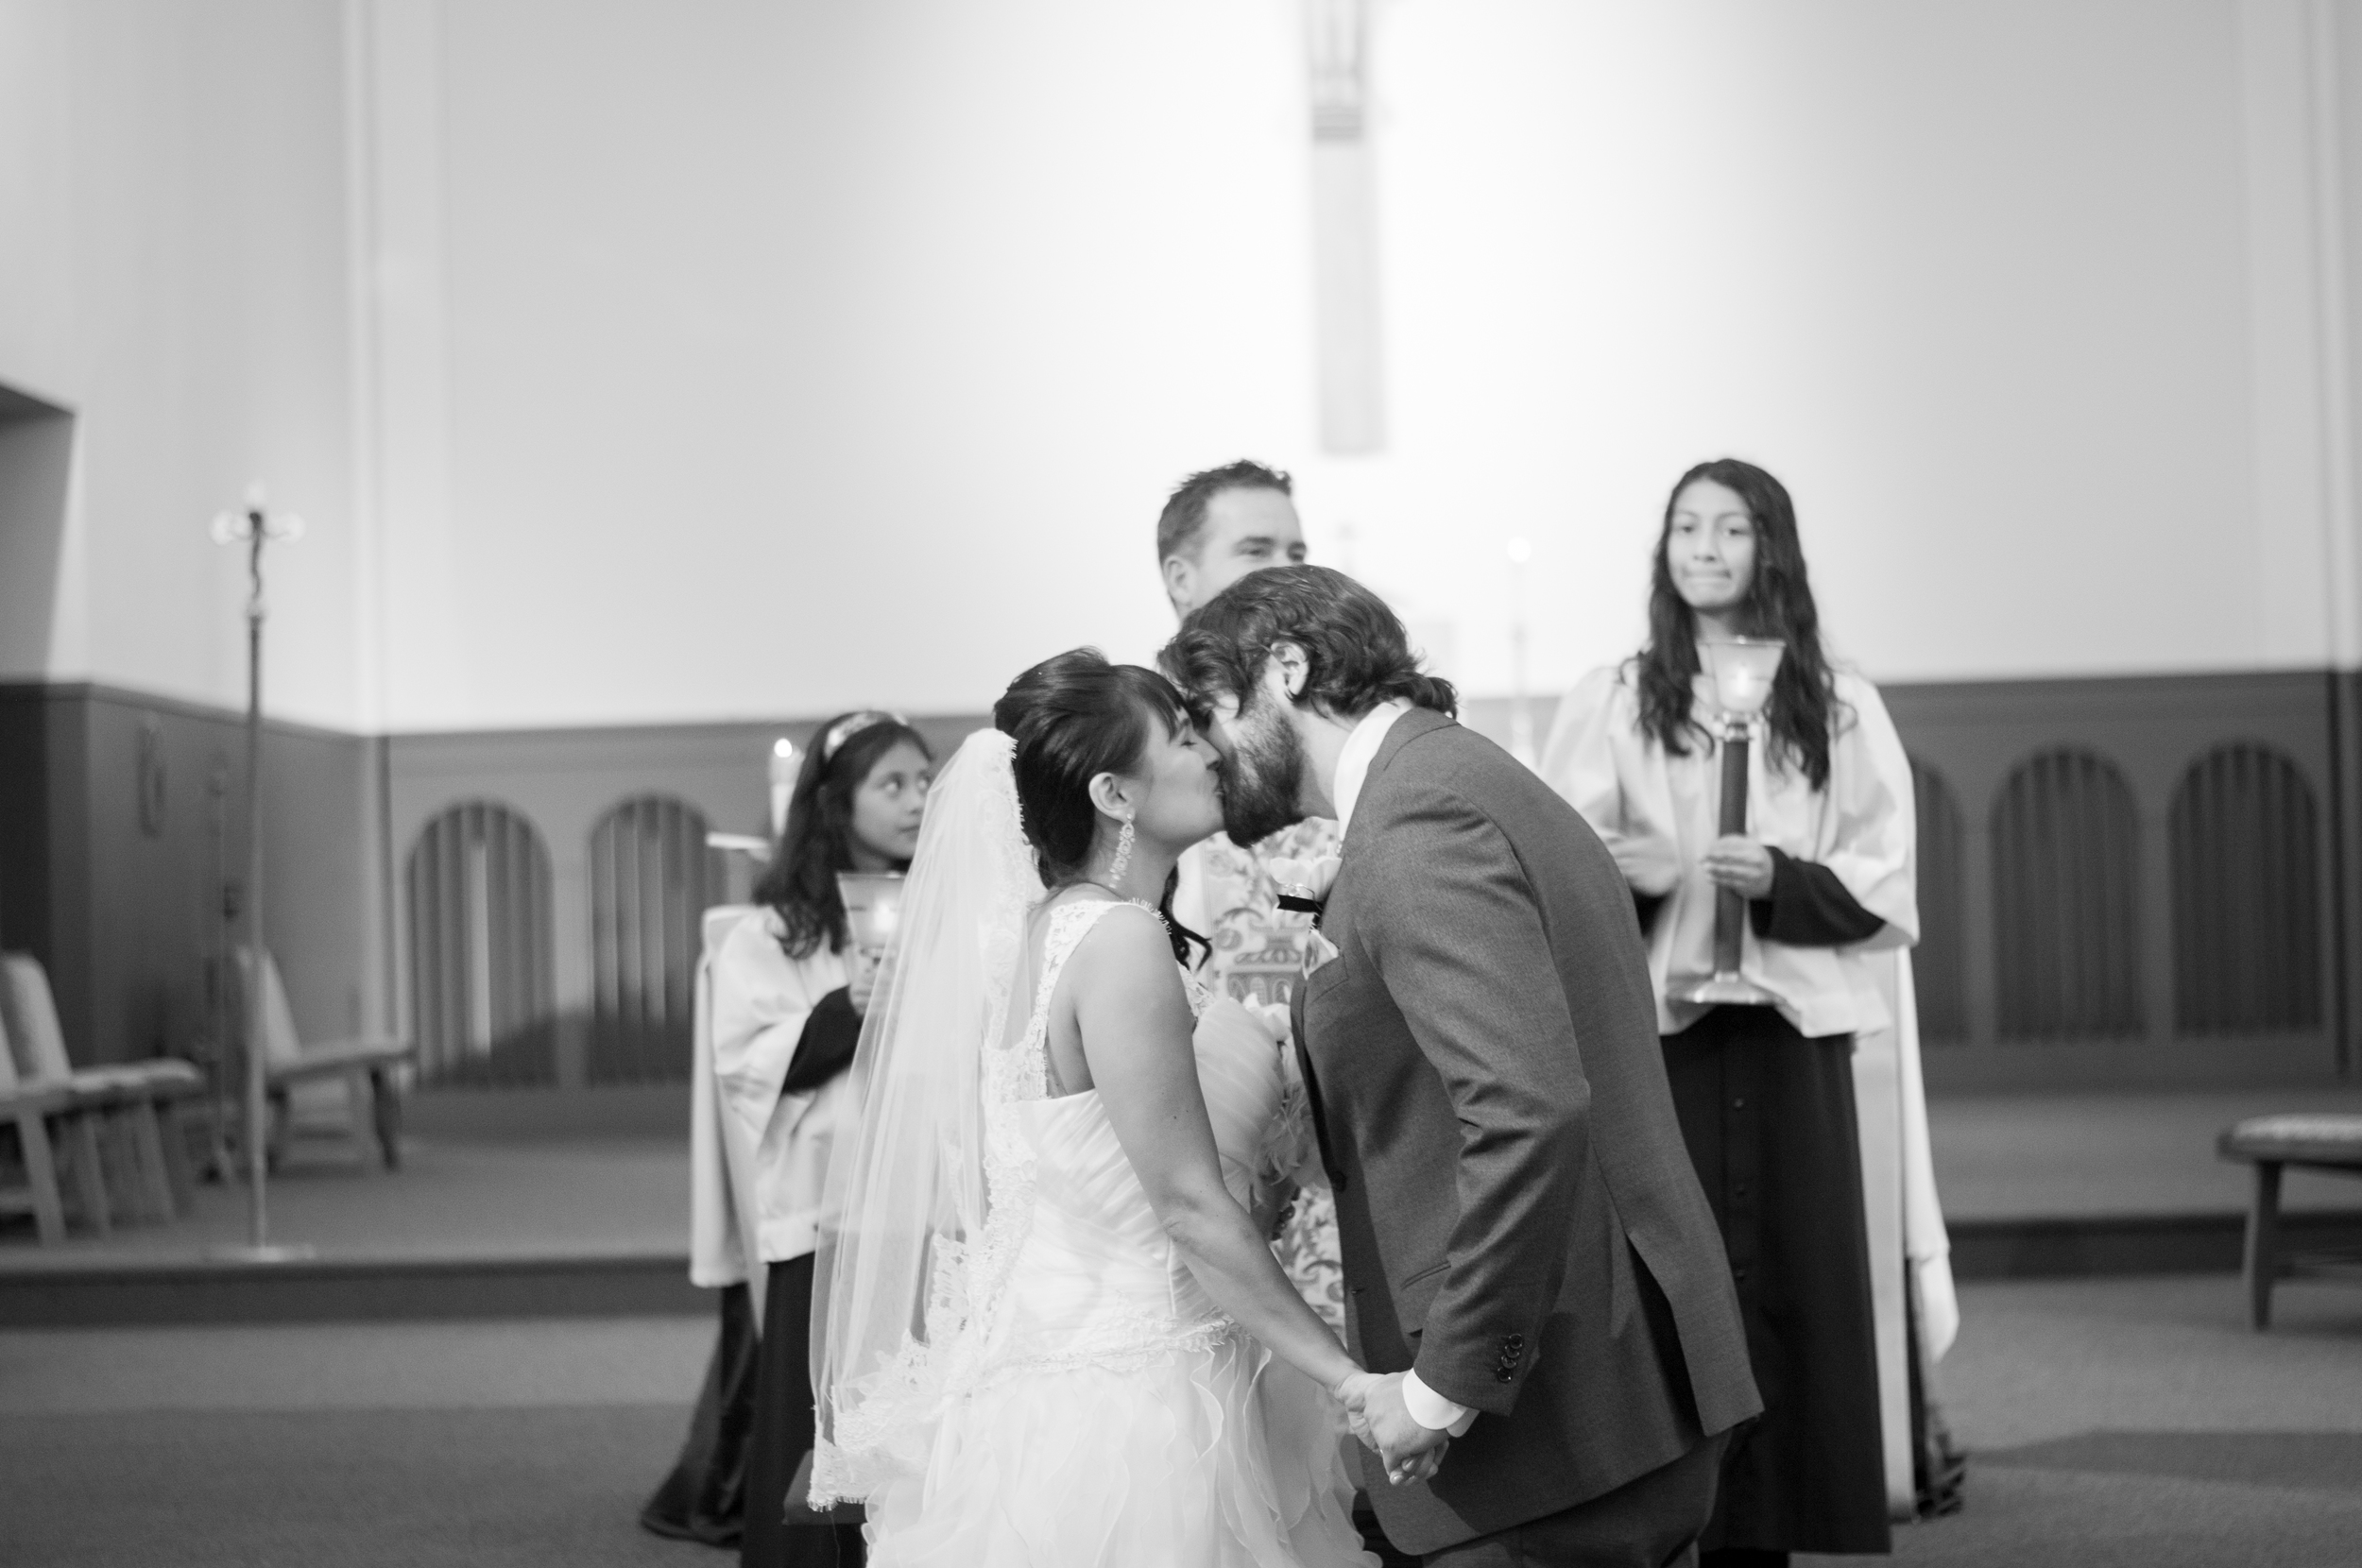 meredithdonnellyphotography-Williams Wedding 2014-322.jpg